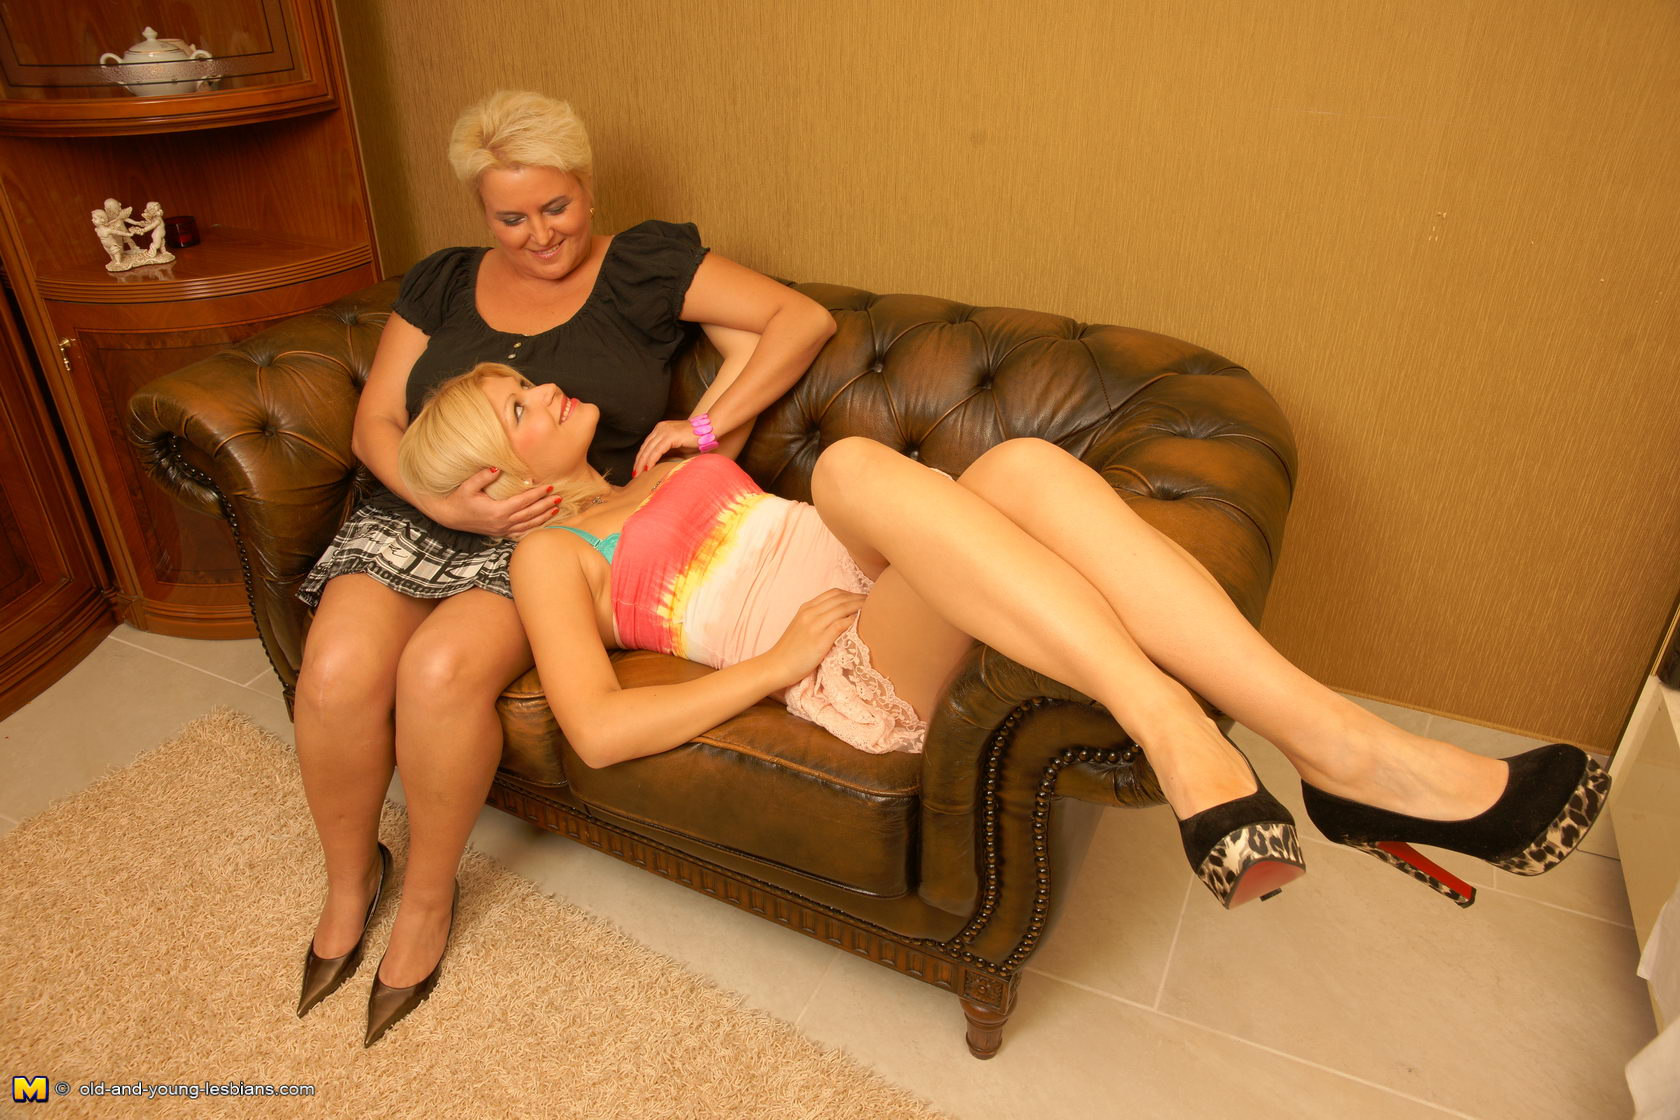 Mature lesbian woman with young girlfriend